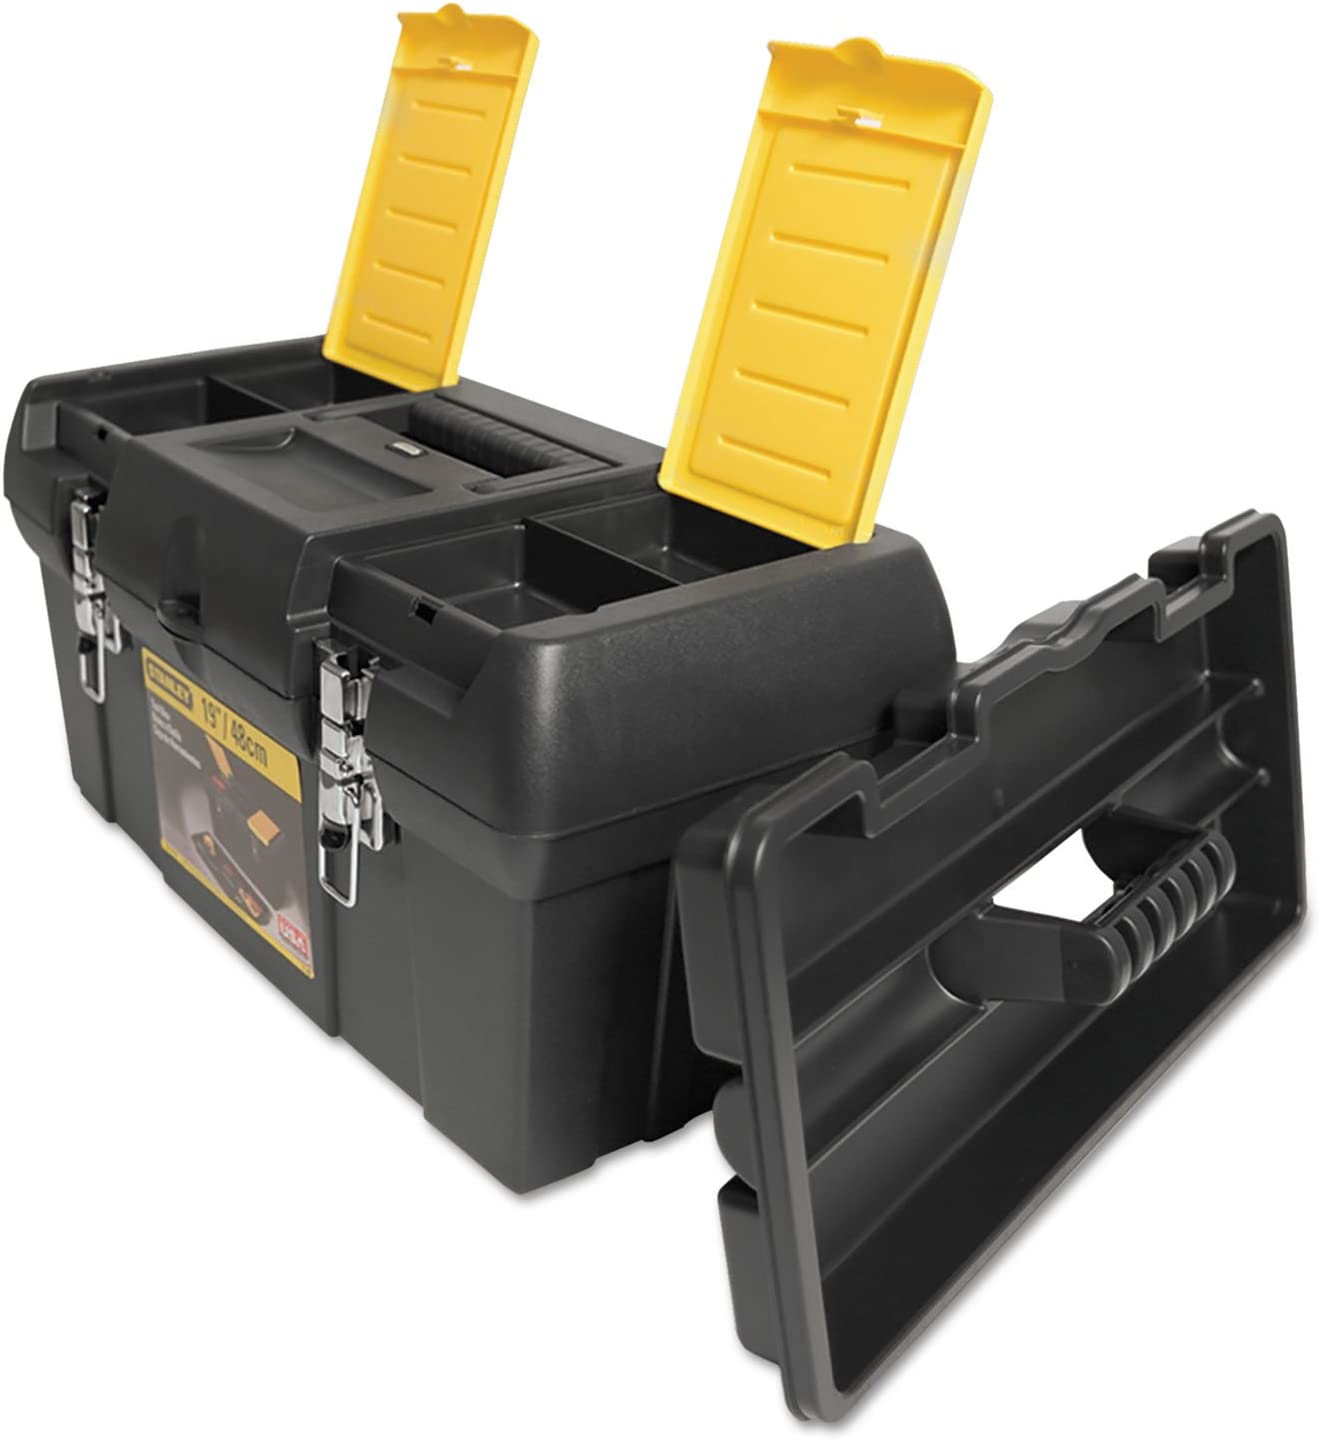 Stanley 019151M Series 2000 Free shipping anywhere in the nation Toolbox w Lid Max 43% OFF Compartments Tray Two